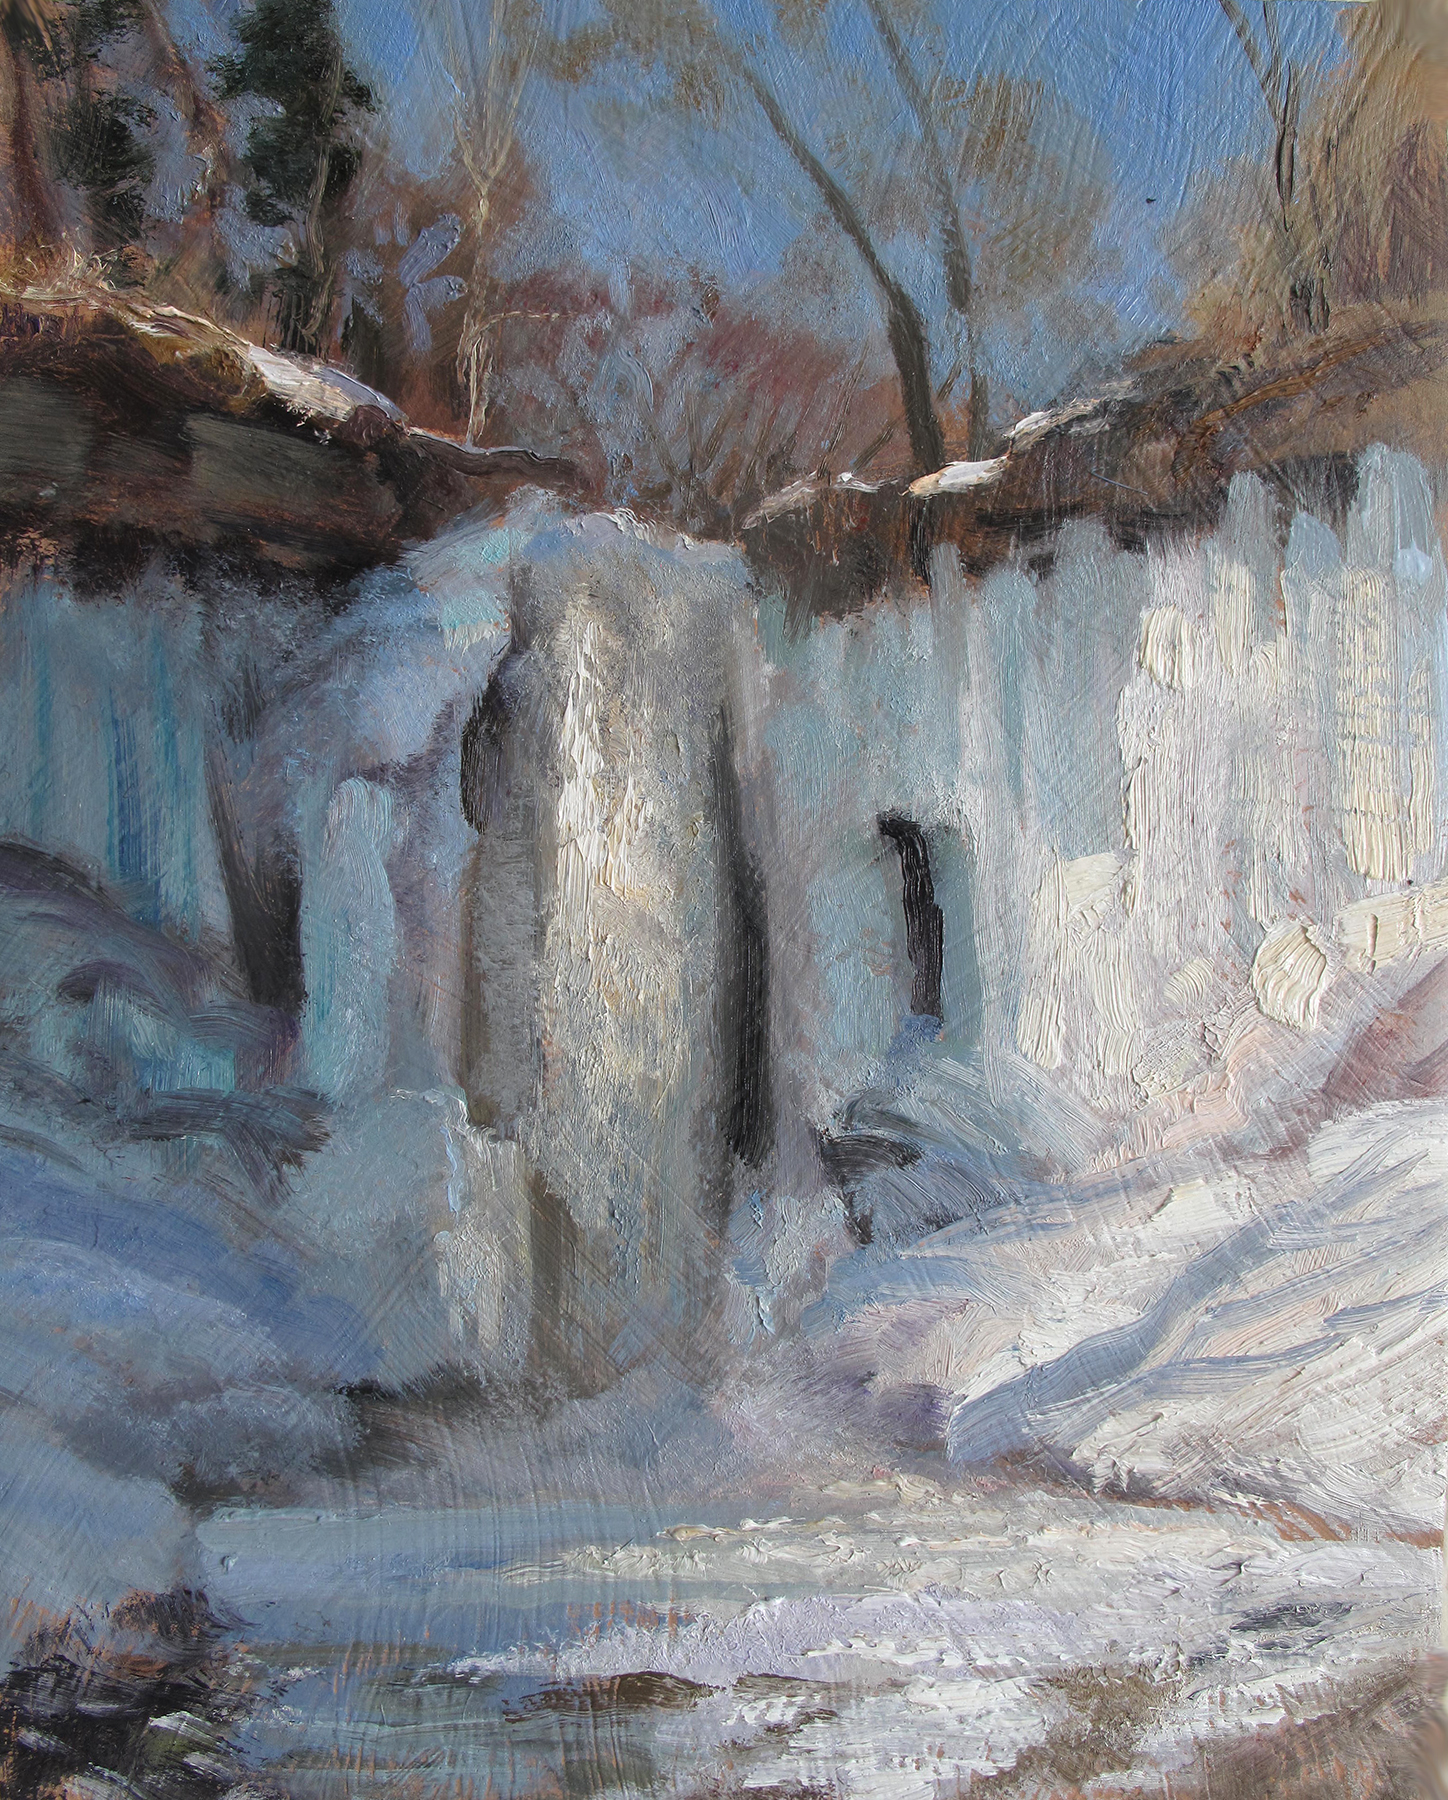 Minnehaha Falls 2019  10 x 8 oil on panel  I paint the falls most every year. It's a fun subject to study on sunny or cloudy days. The ice forms differently each winter and always has a peculiar aqua color. I've been told that's from the ice molecules under stress.